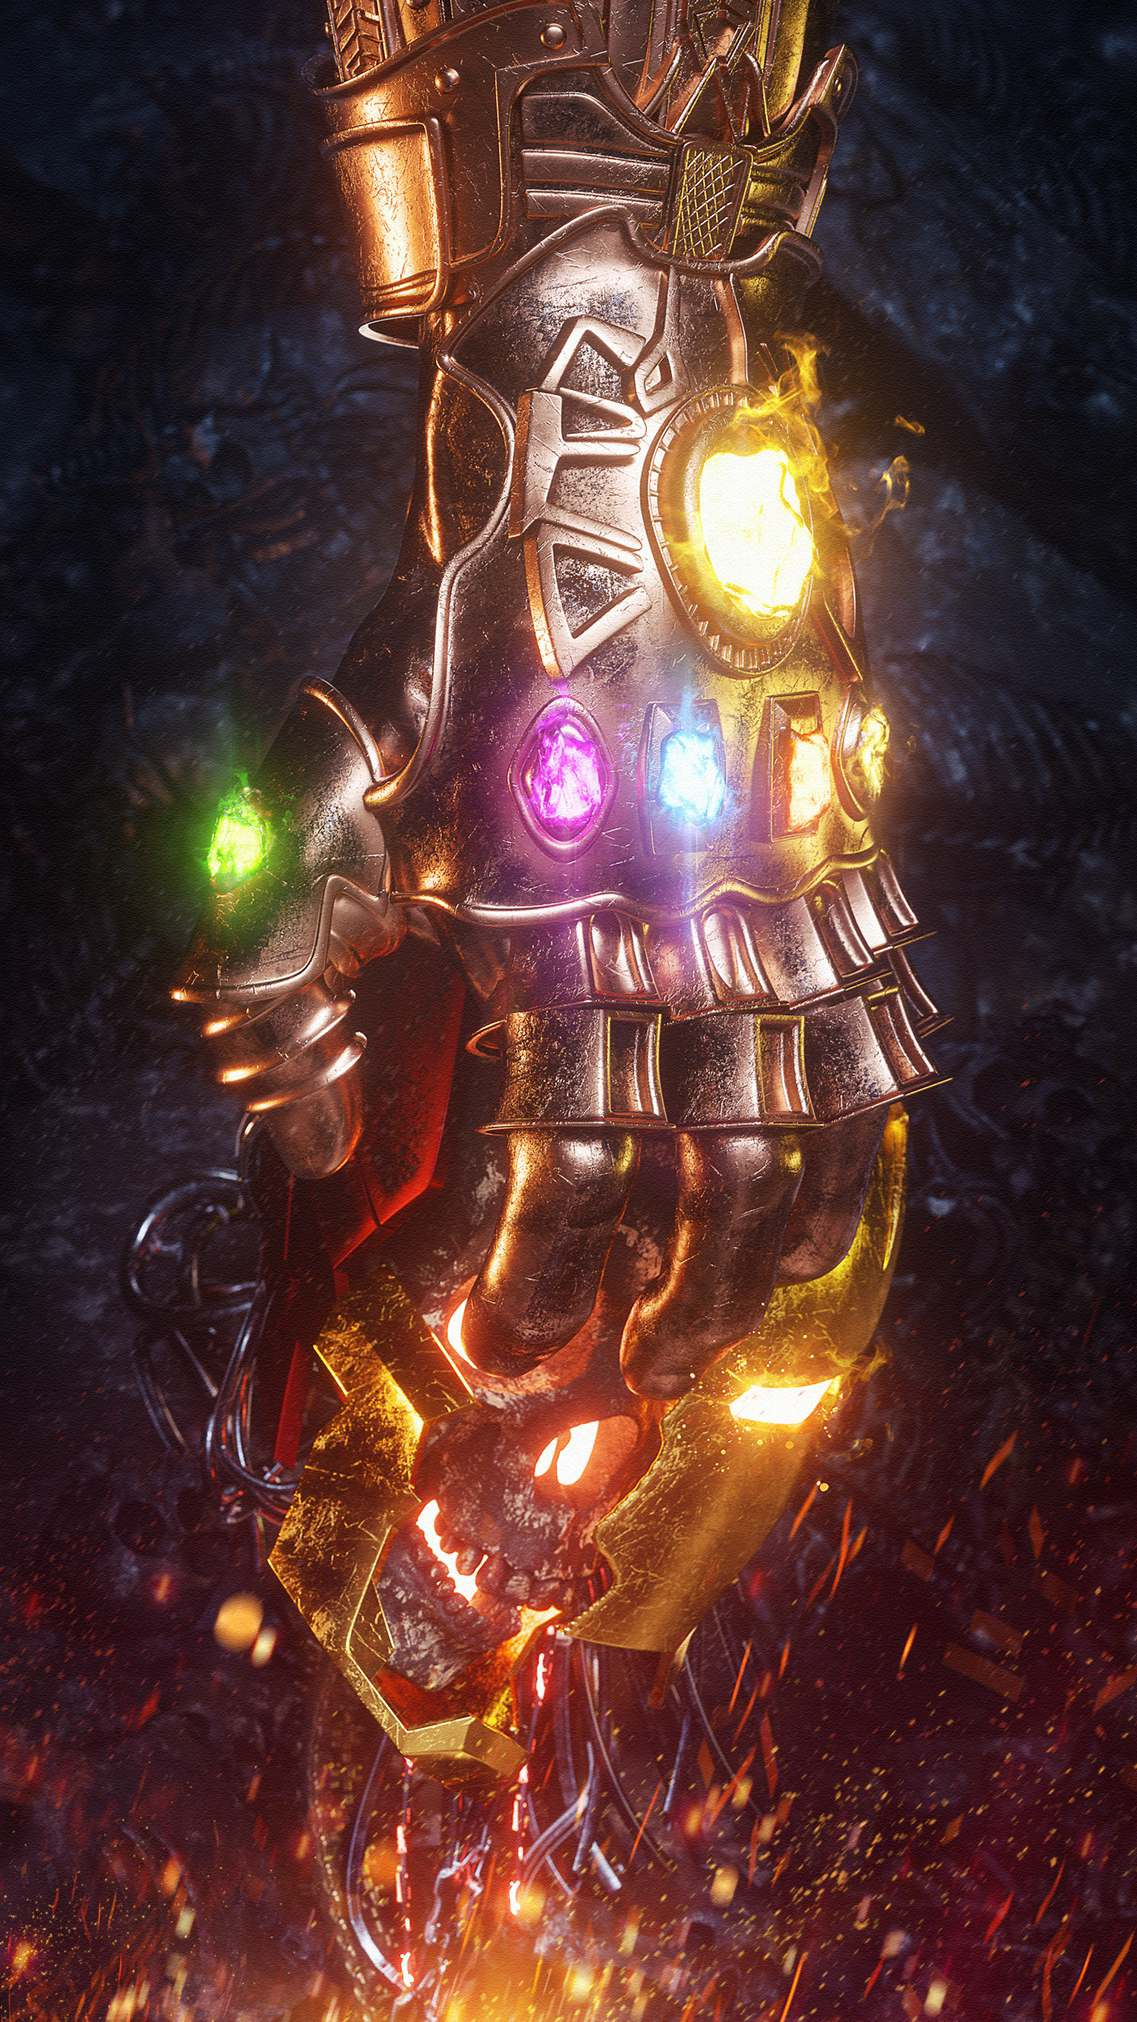 Cute Wallpapers For Girls For Computer The Infinity Gauntlet Thanos Infinity War Iron Man Death